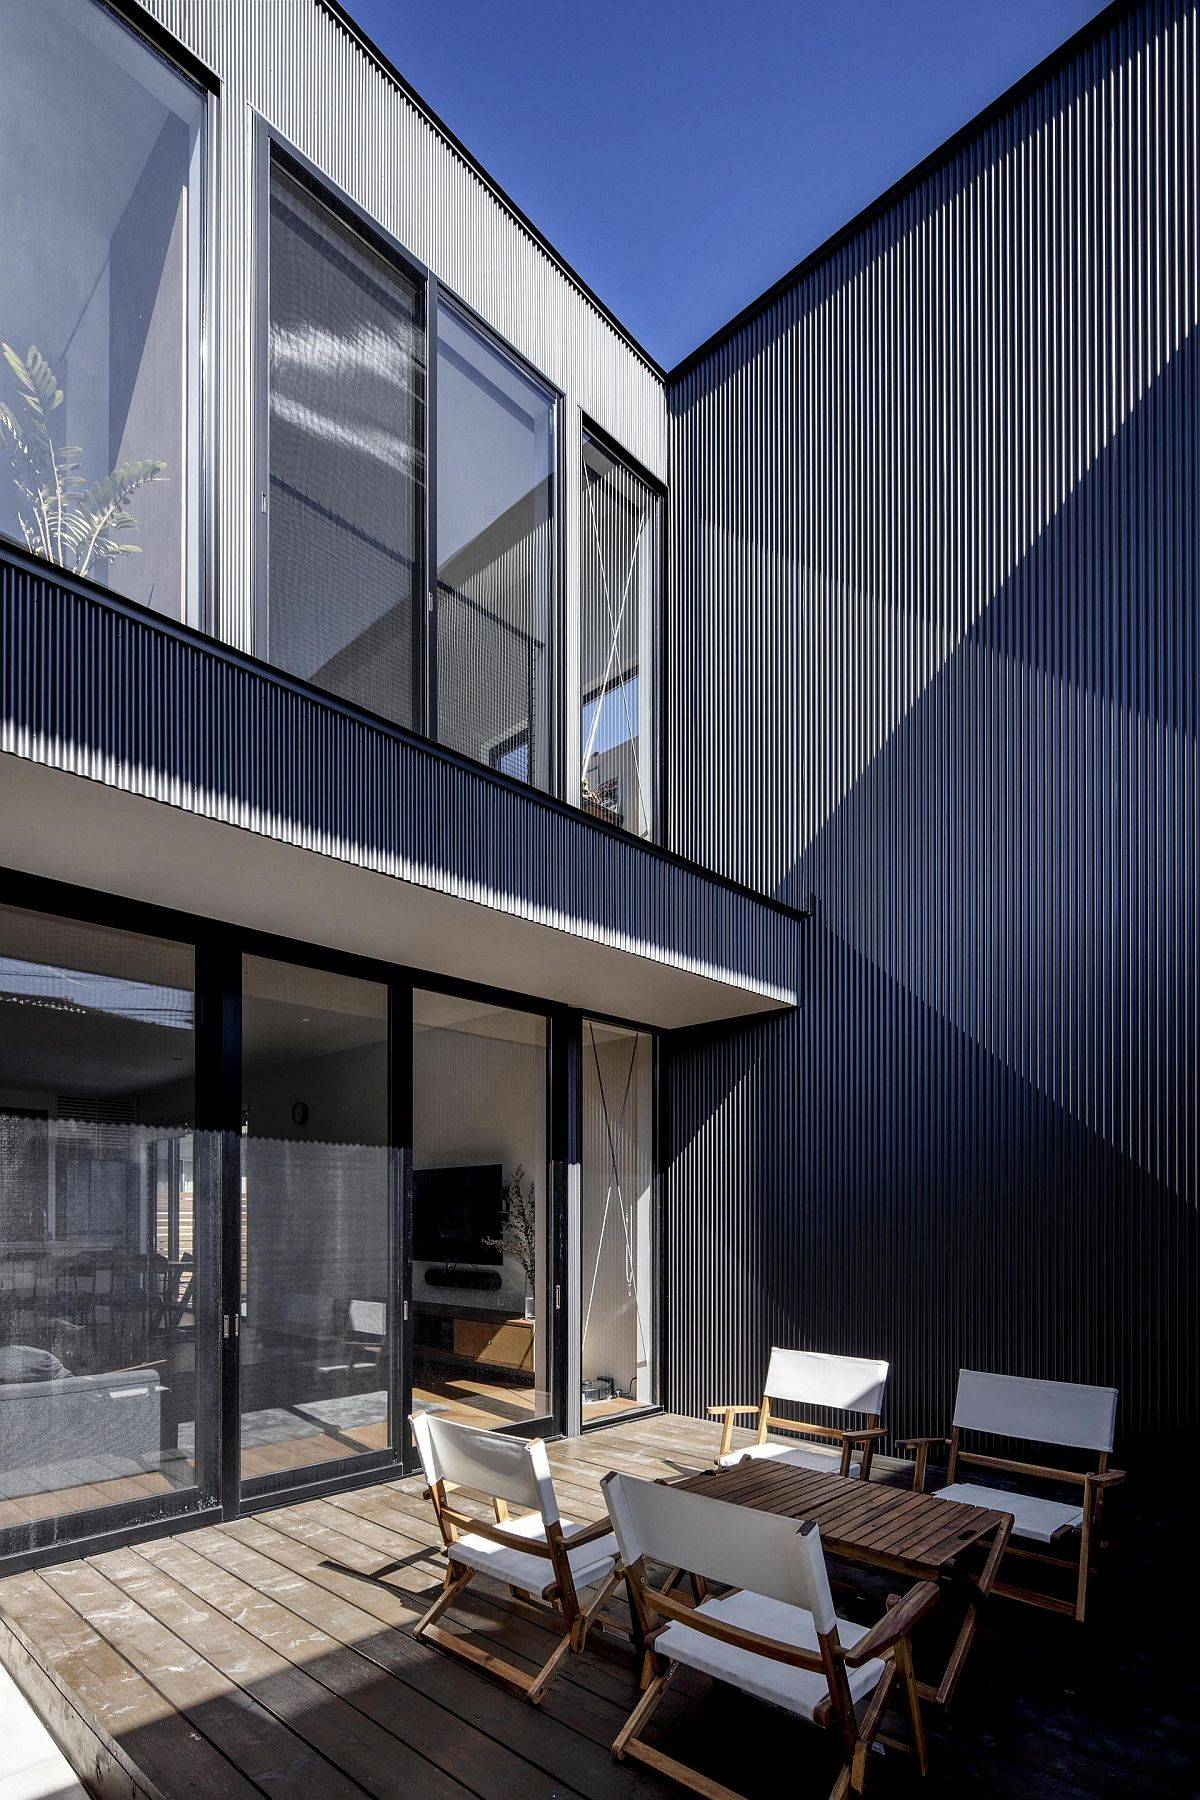 Central courtyard of the japanese home promises complete privacy